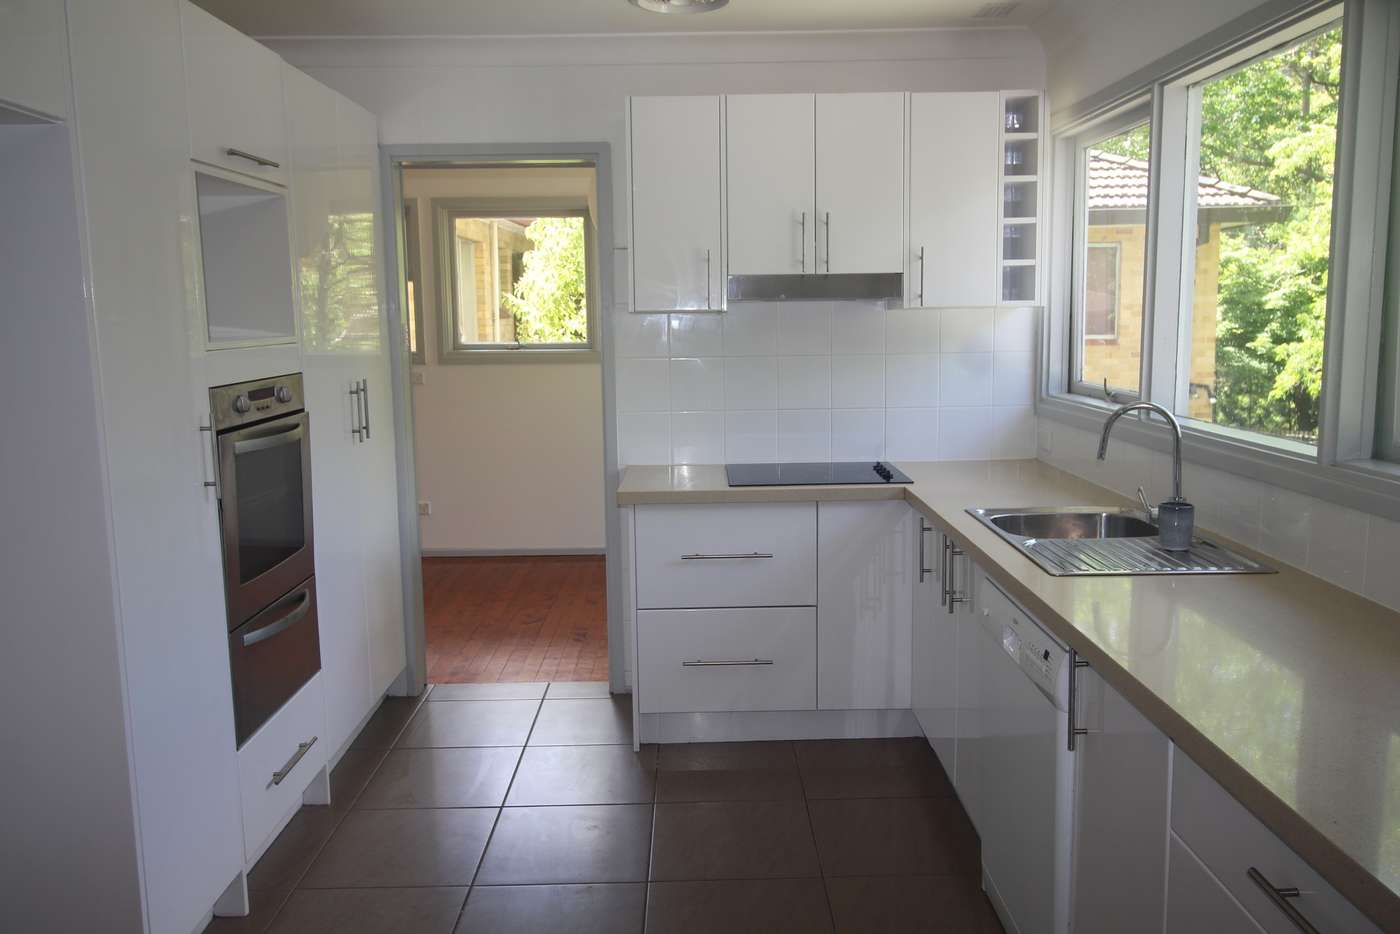 Main view of Homely house listing, 5 Avery Street, Normanhurst NSW 2076